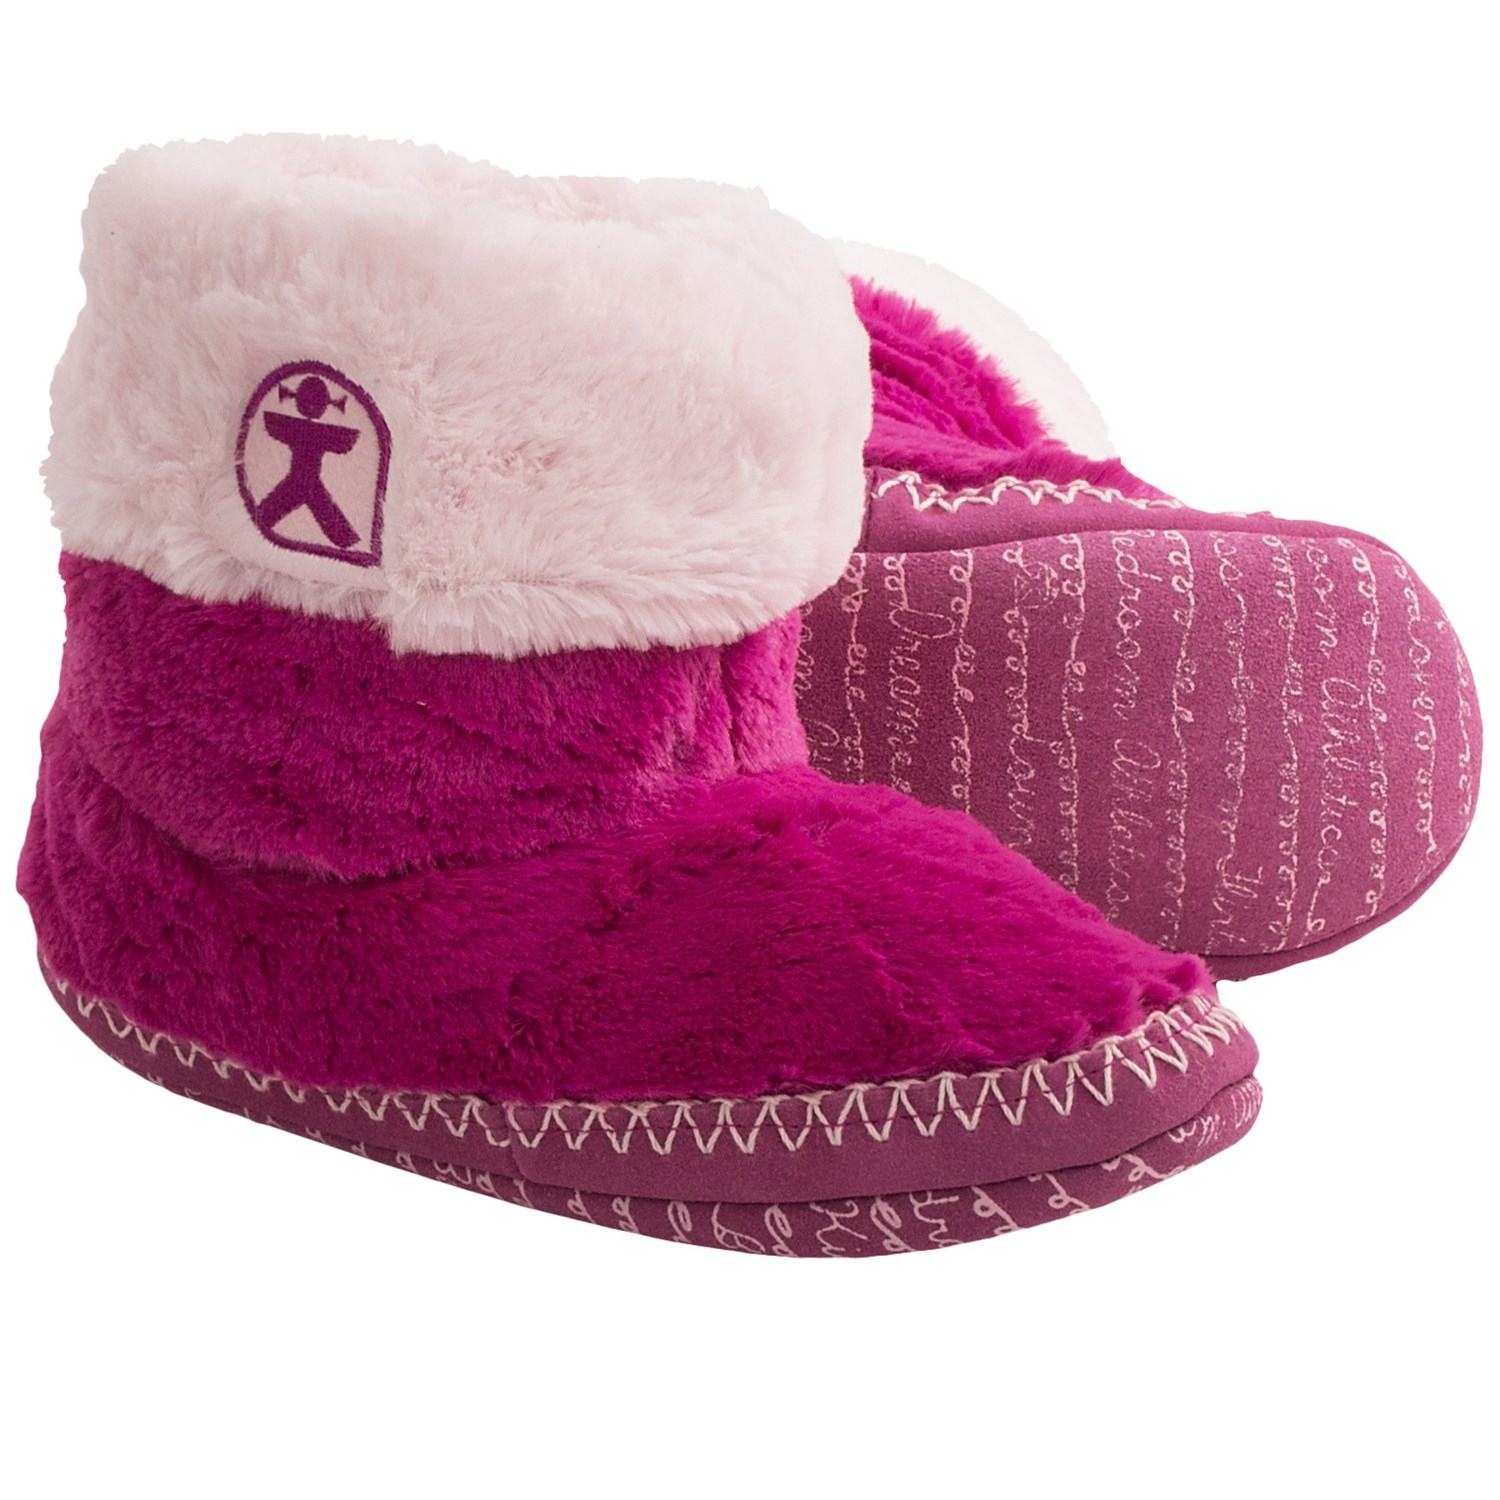 bedroom athletics fern boot slippers for women in hot pink soft pink